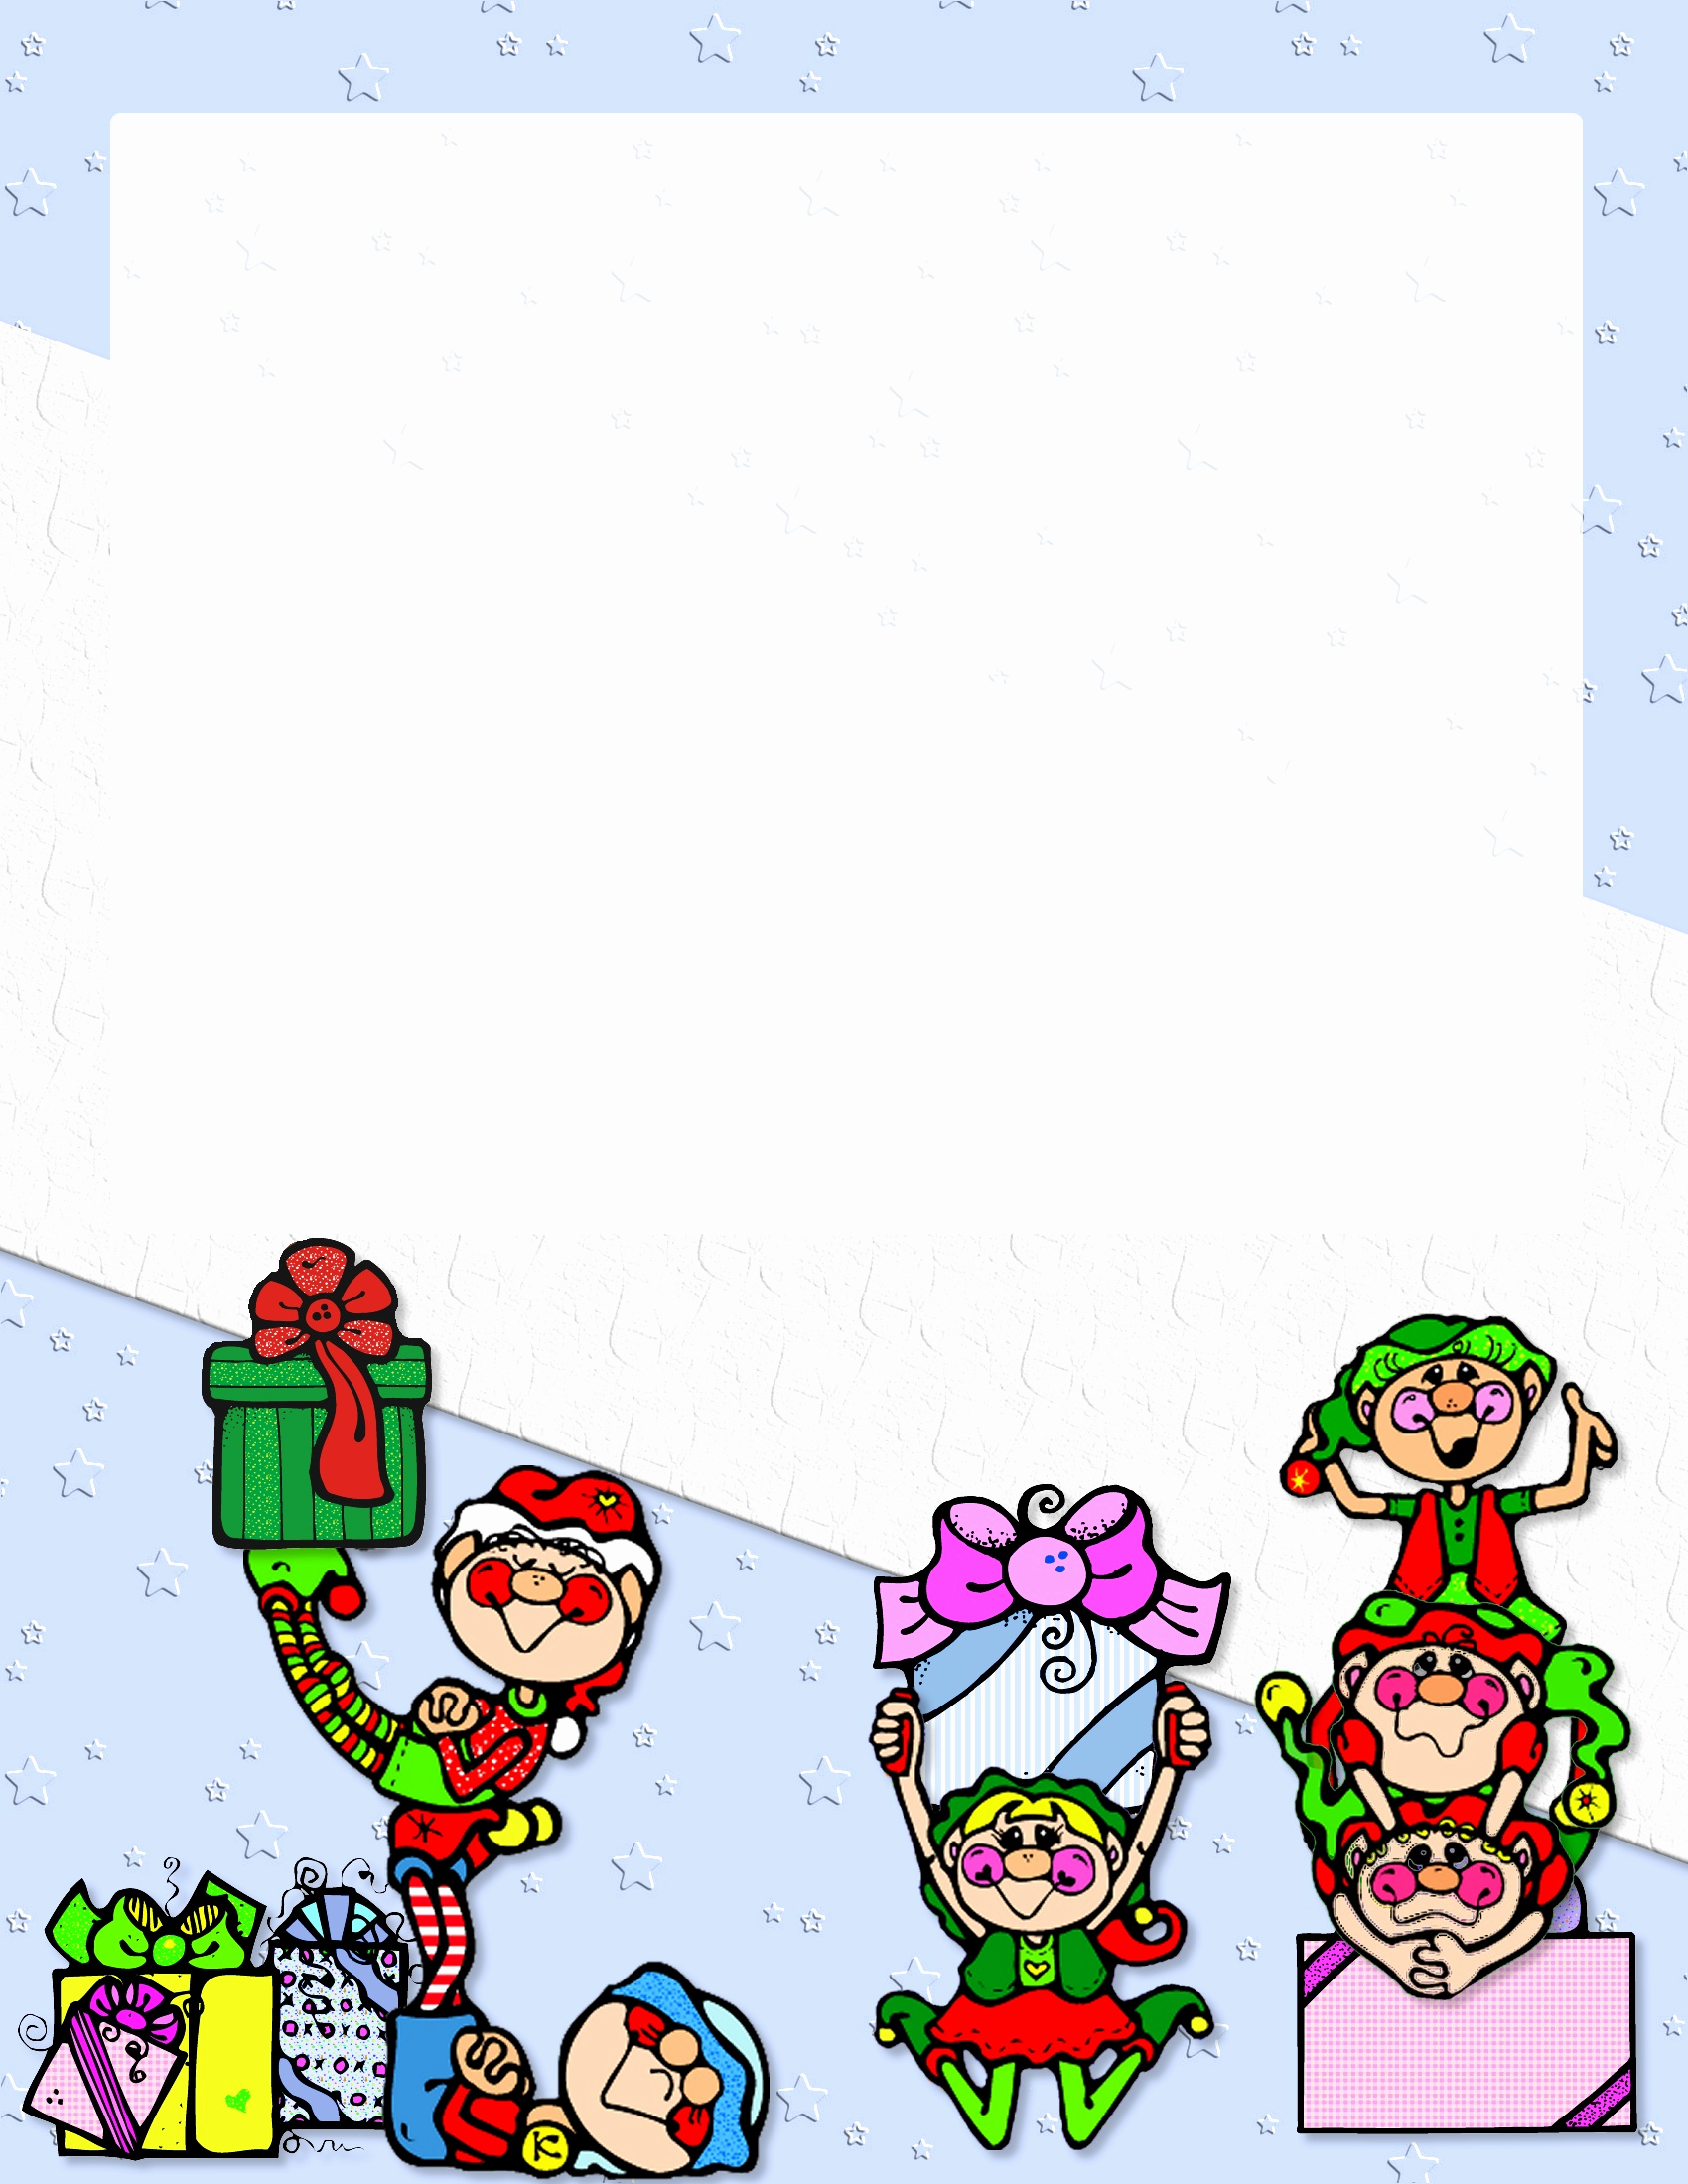 Free Christmas Stationery Templates Awesome Christmas 2 Free Stationery Template Downloads